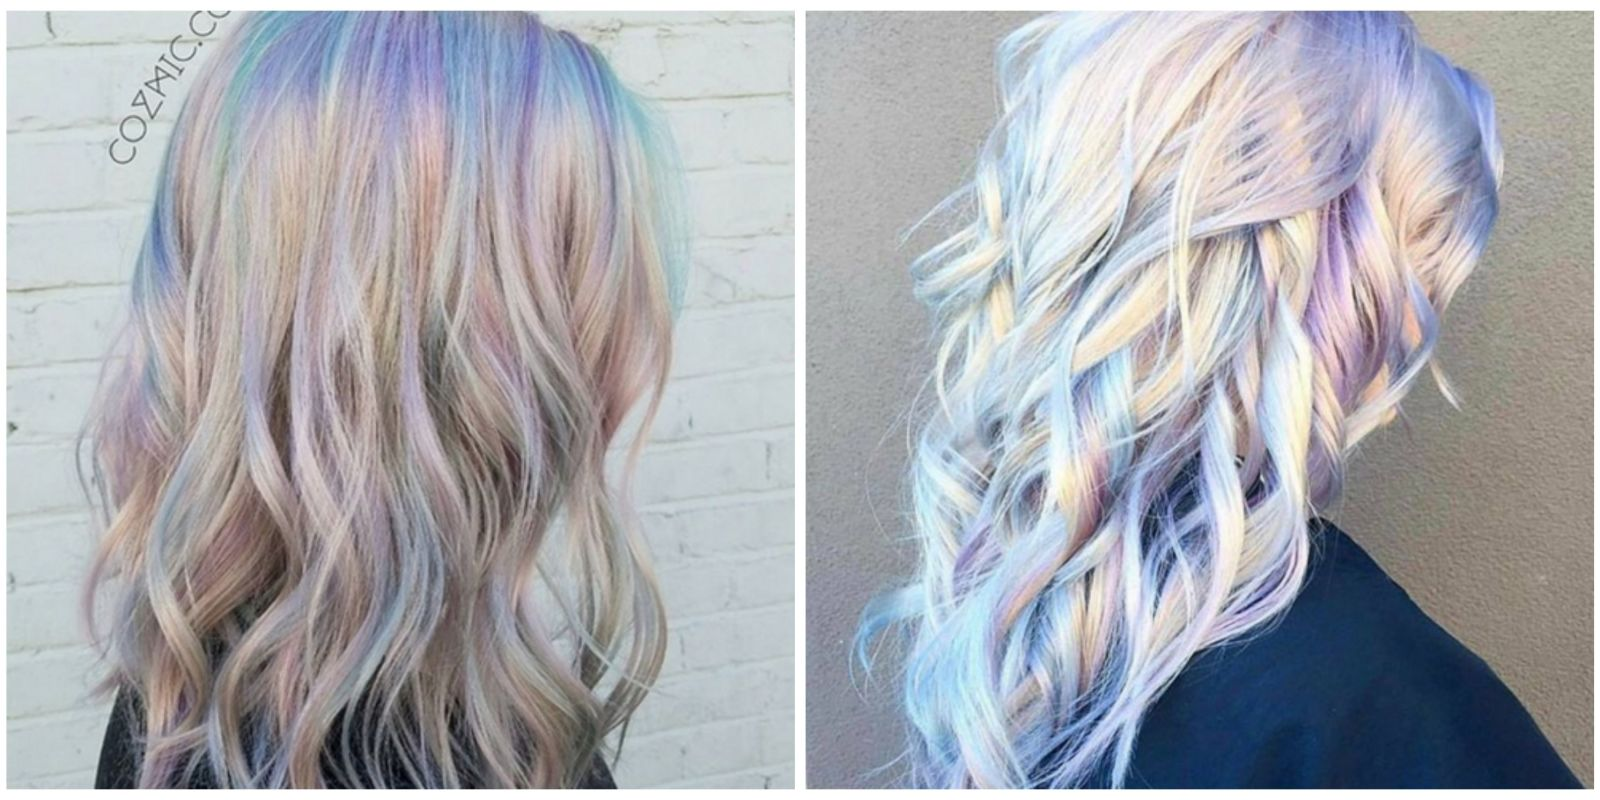 style hair colour holographic hair is the 2017 hair trend 2017 hair 6217